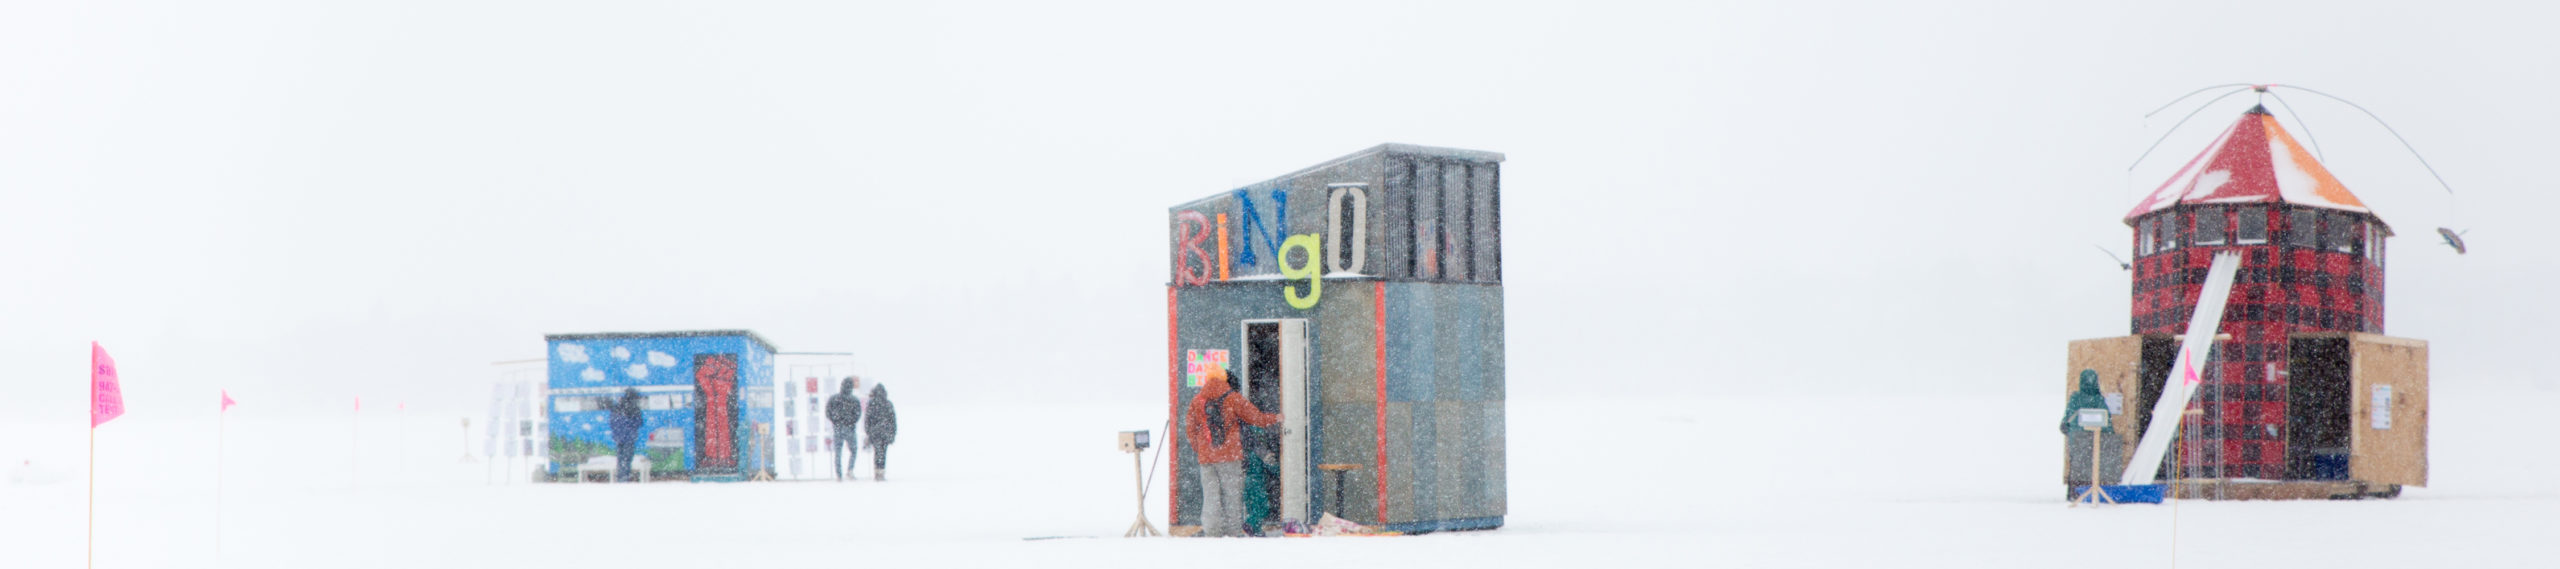 Almost pixelated by the snow, three shanties stand out against the white day: a small light blue shanty with a red door, two figures enter the bingo shanty, and a red plaid shanty that looks like a lighthouse.